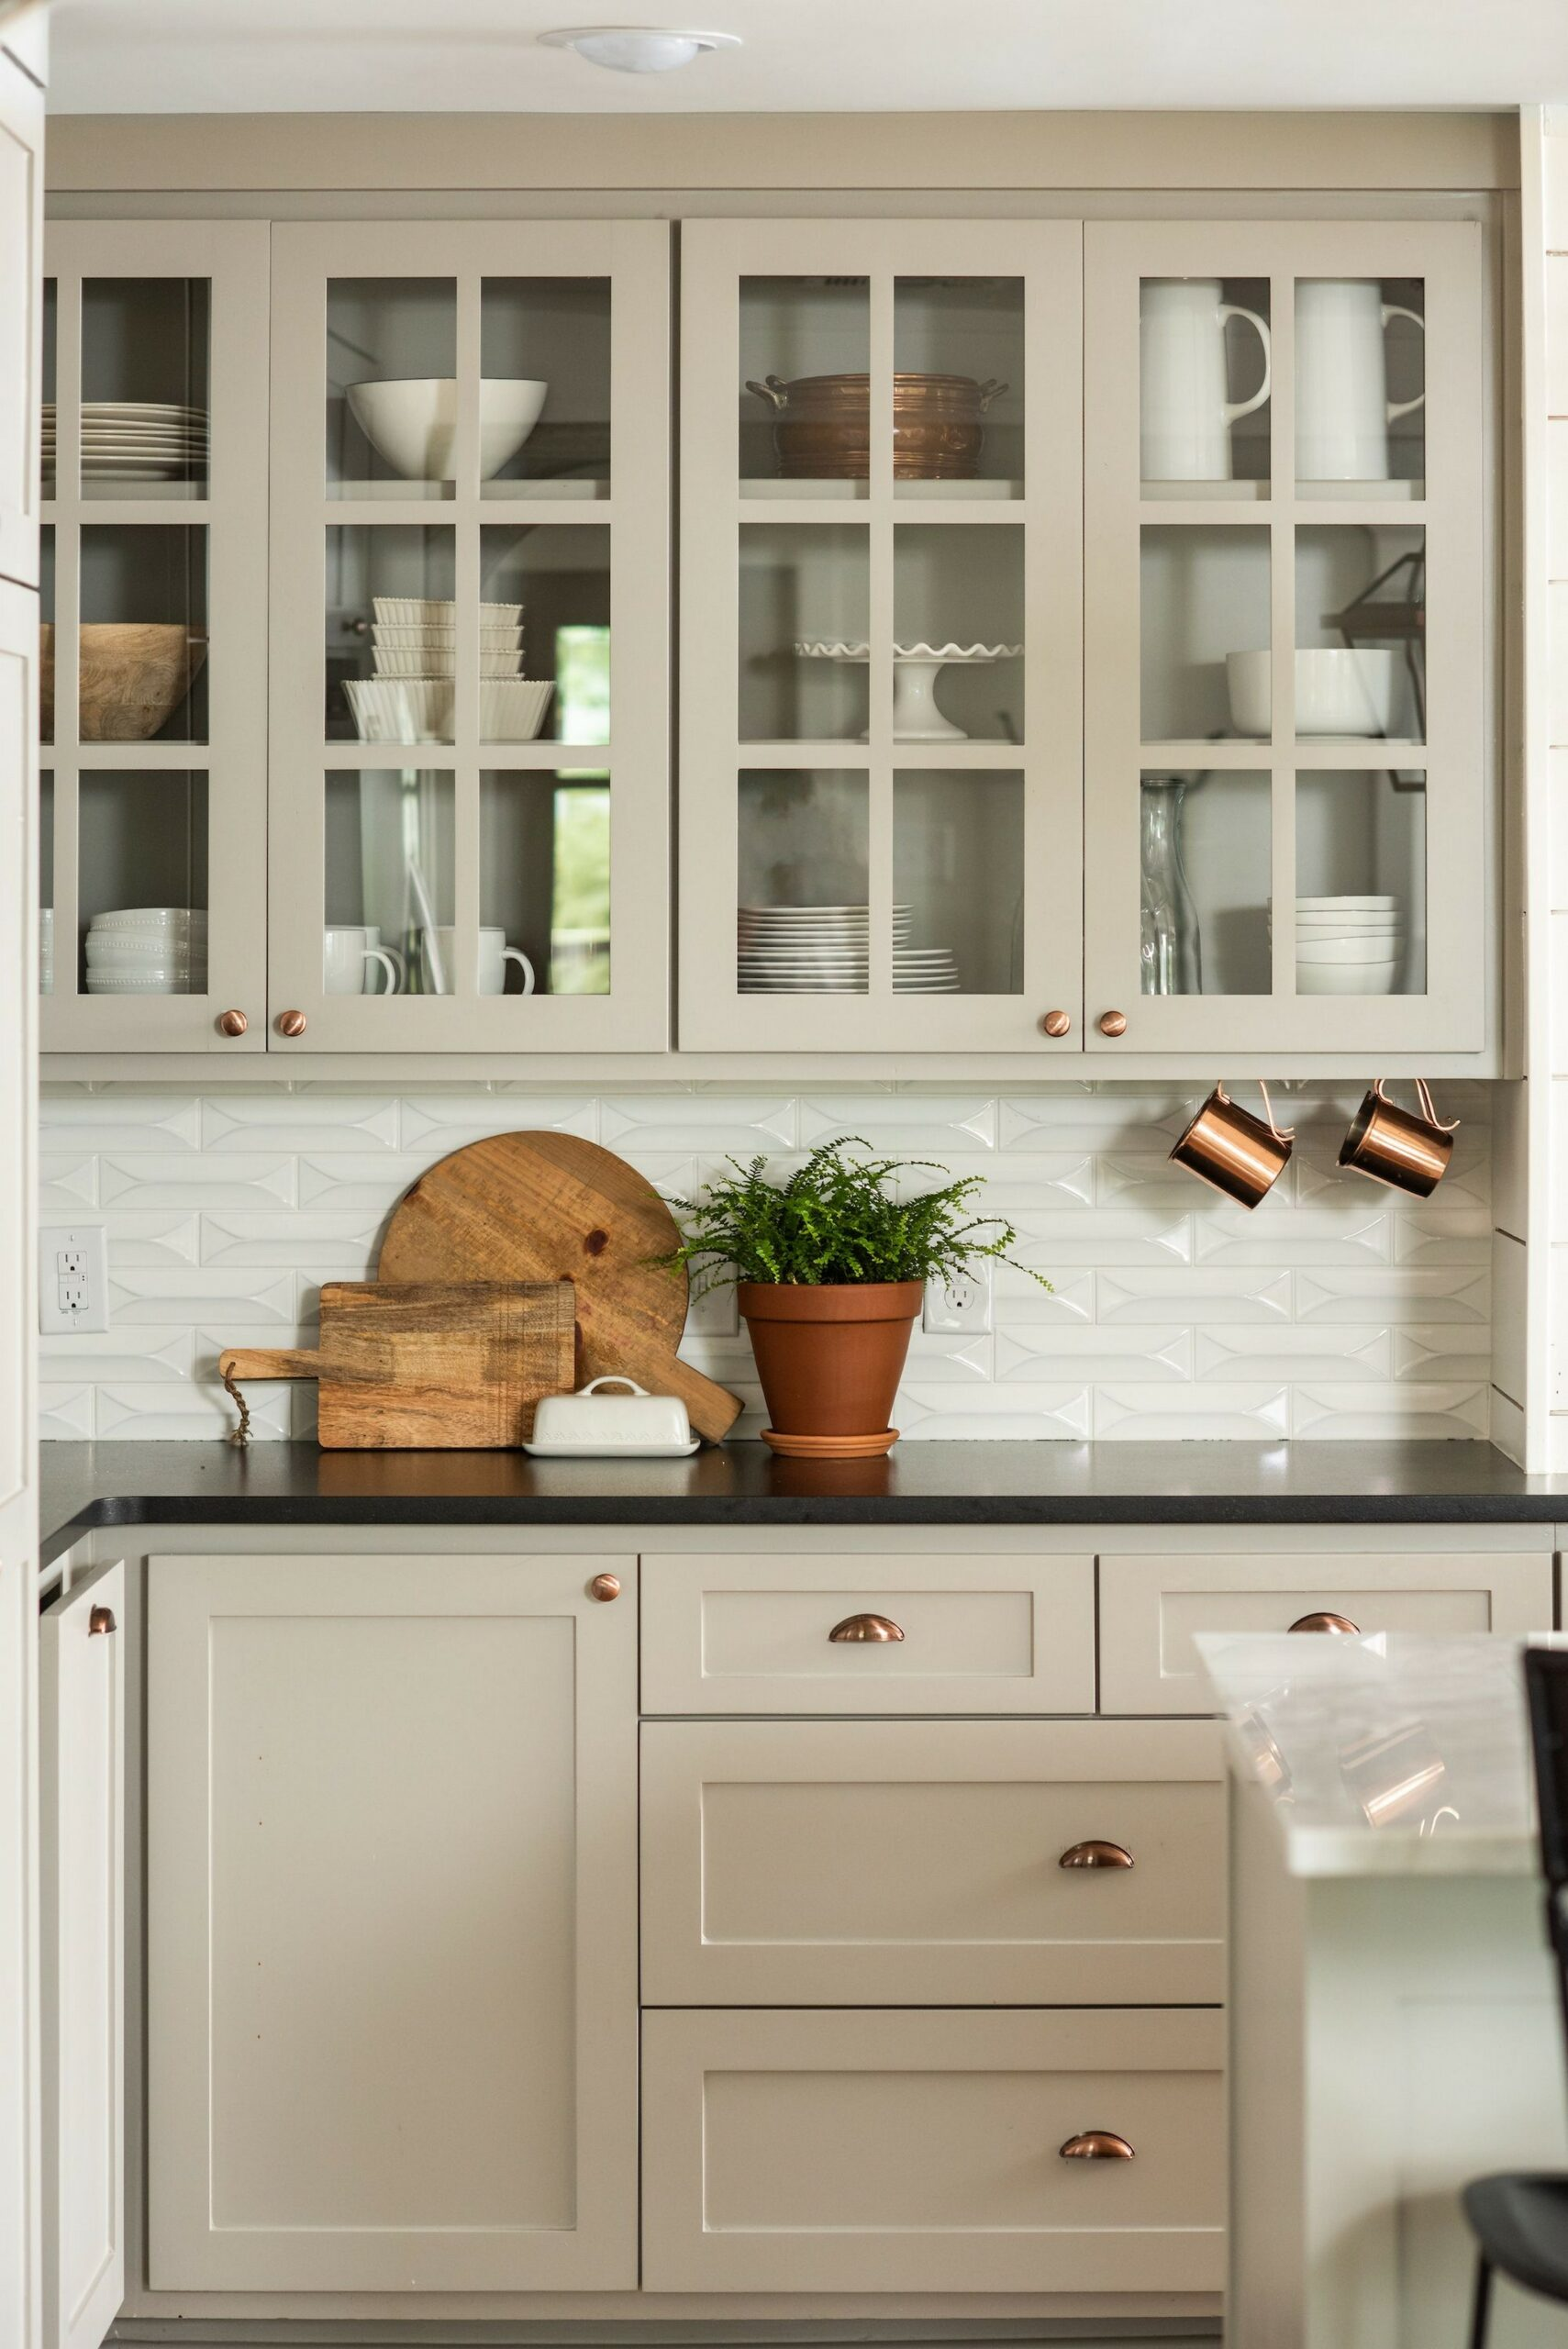 71 Painted Kitchen Cabinets Ideas For Home Decor 10